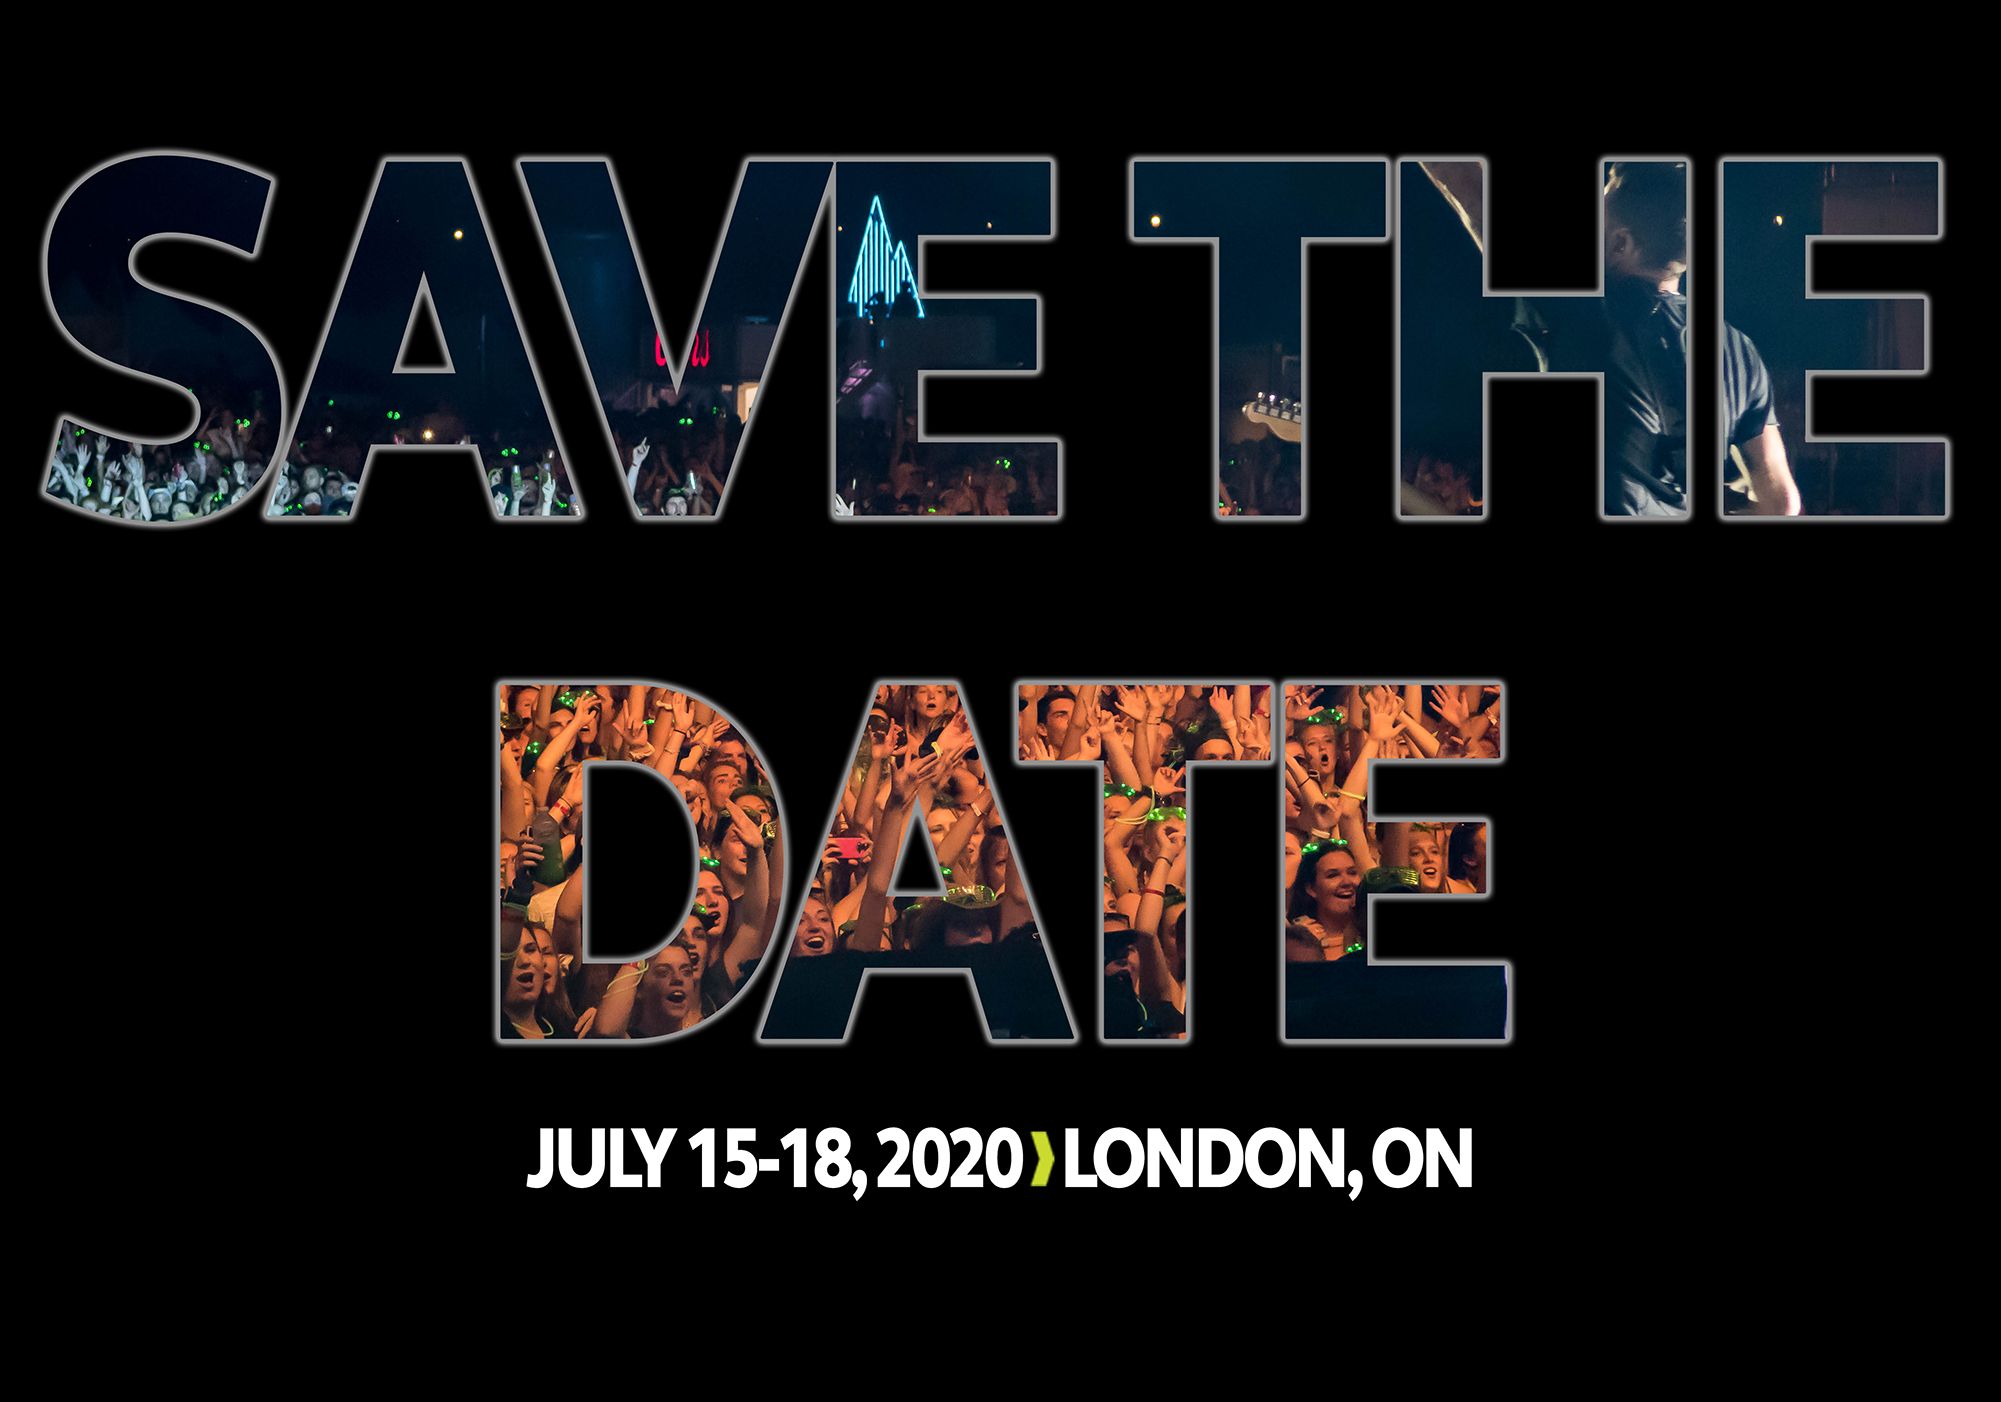 Start.ca Rocks the Park 2020 July 15-18, 2020